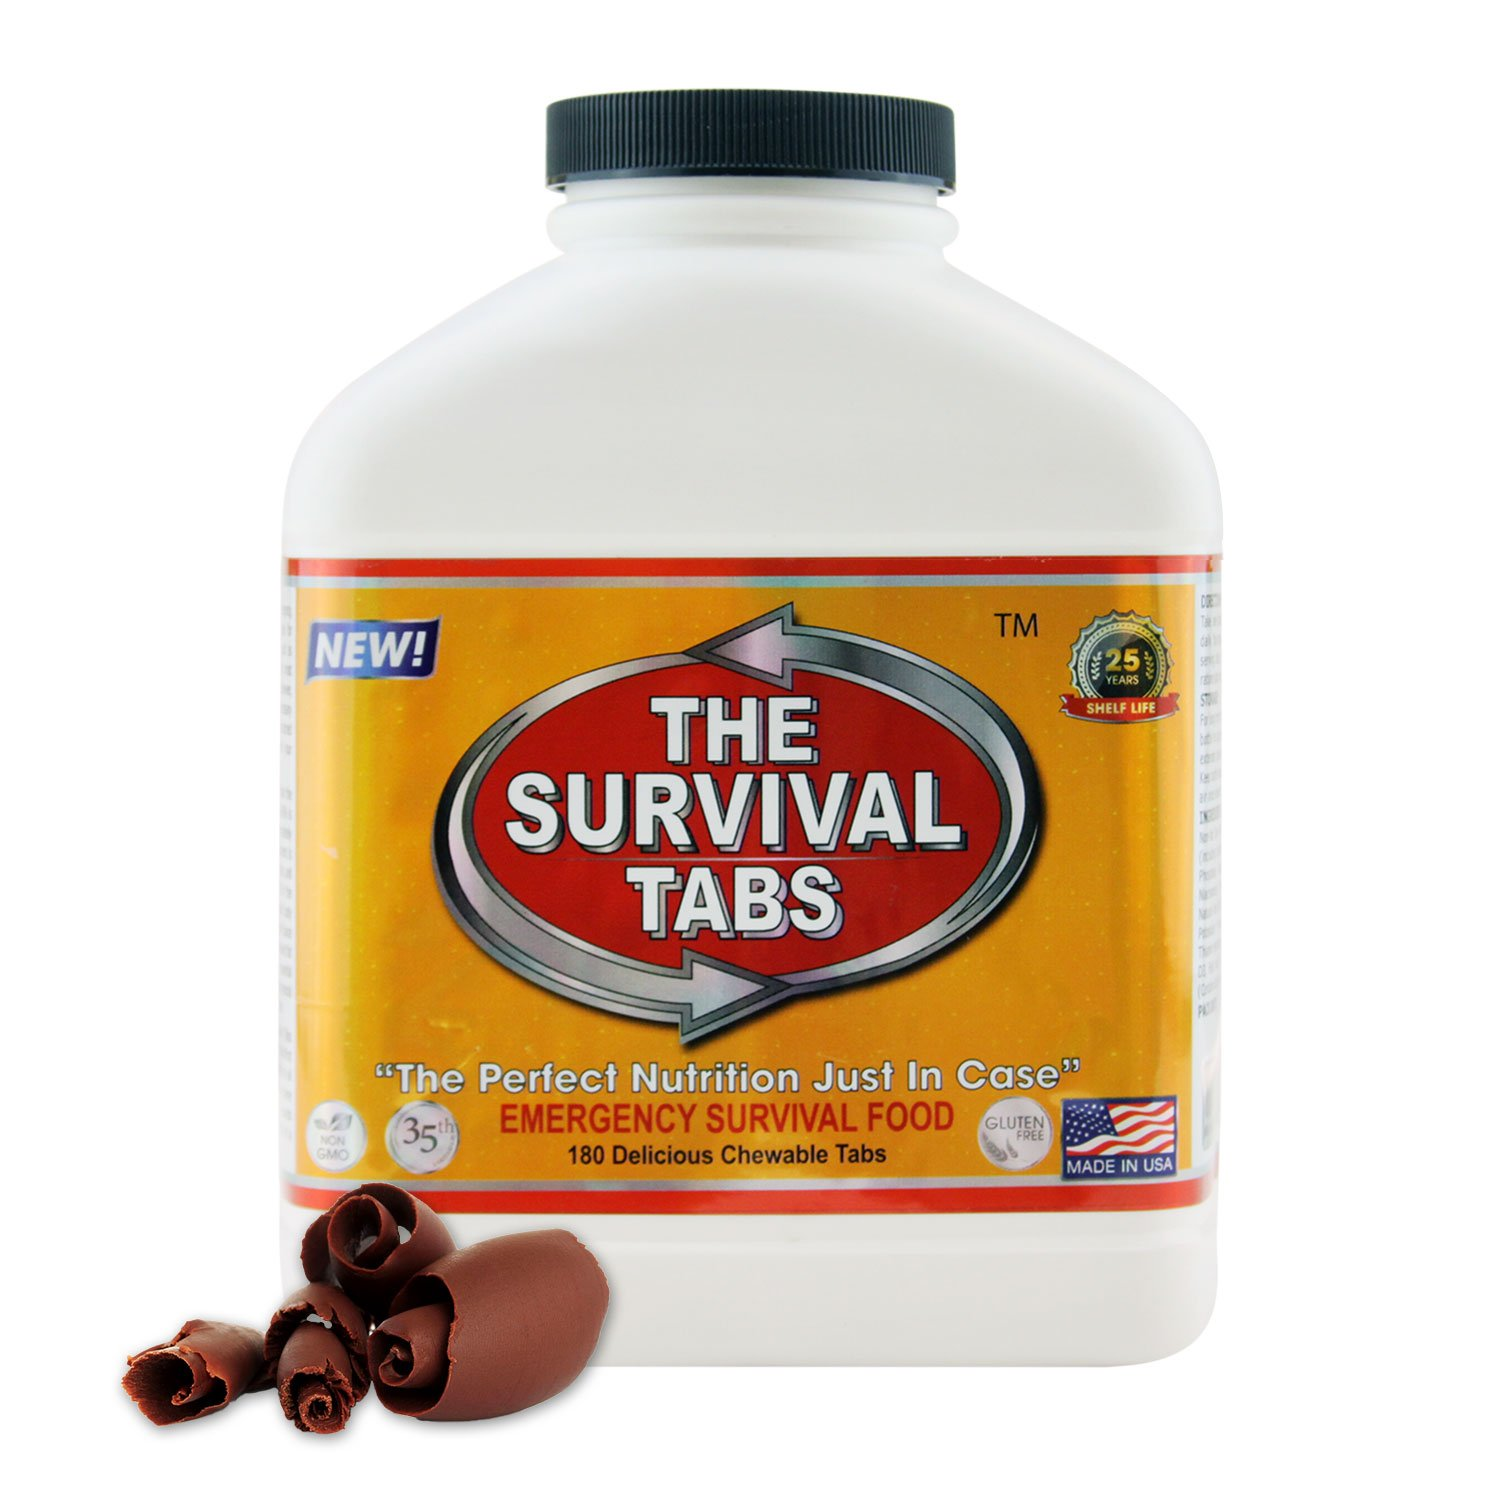 Food To Pack In Earthquake Kit - 15 Days Supply - Chocolate by The Survival Tabs